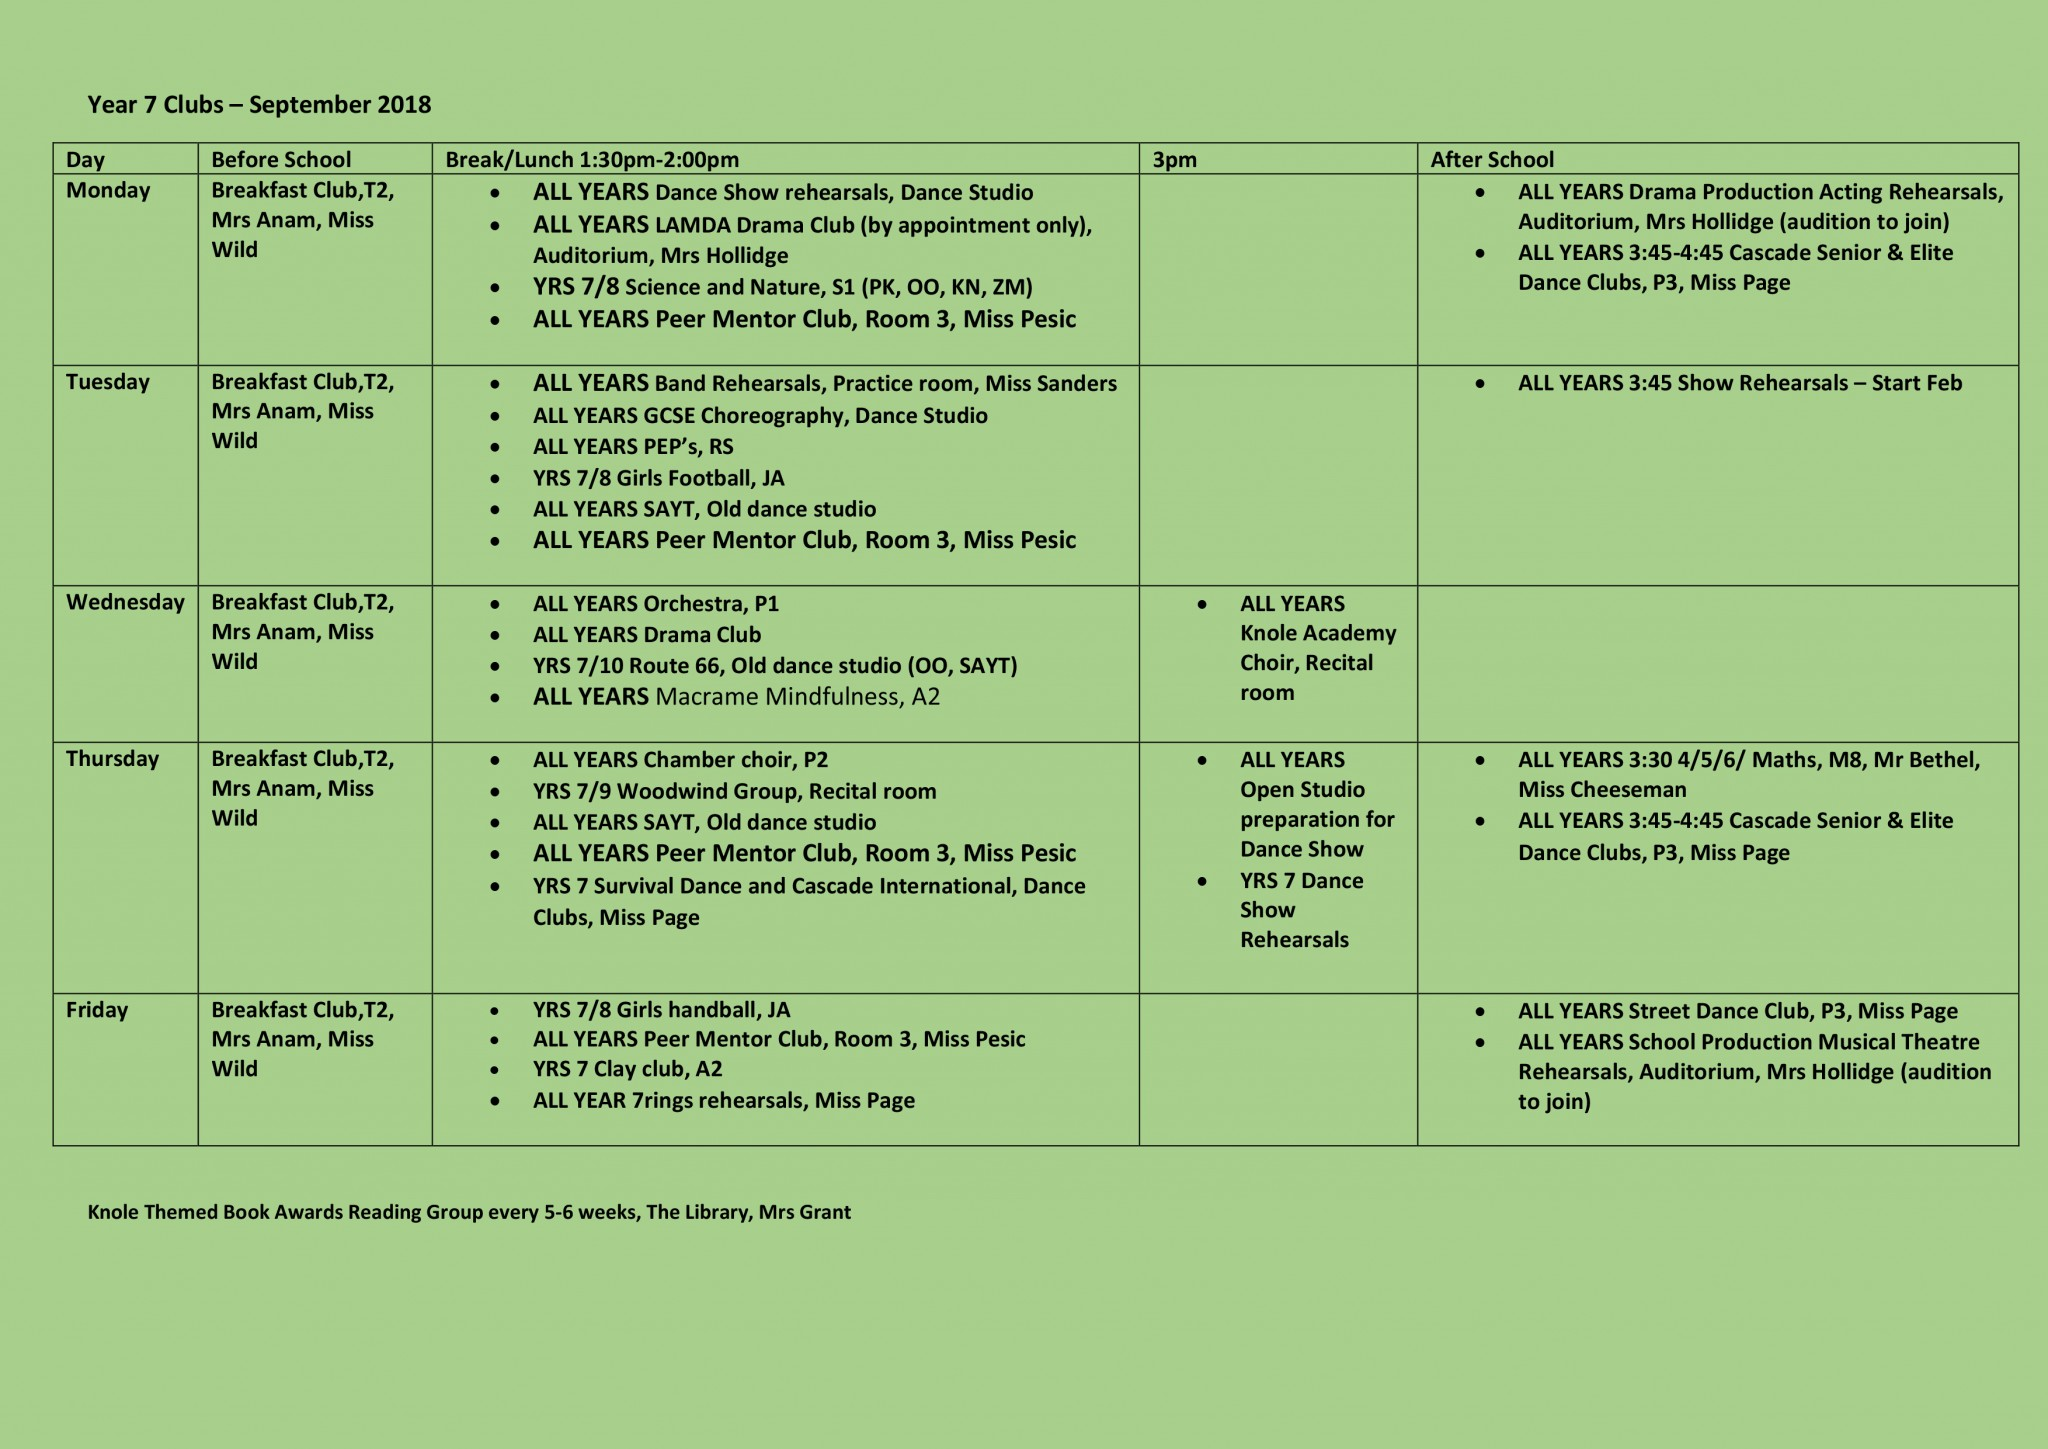 Year 7 Clubs Revised 5